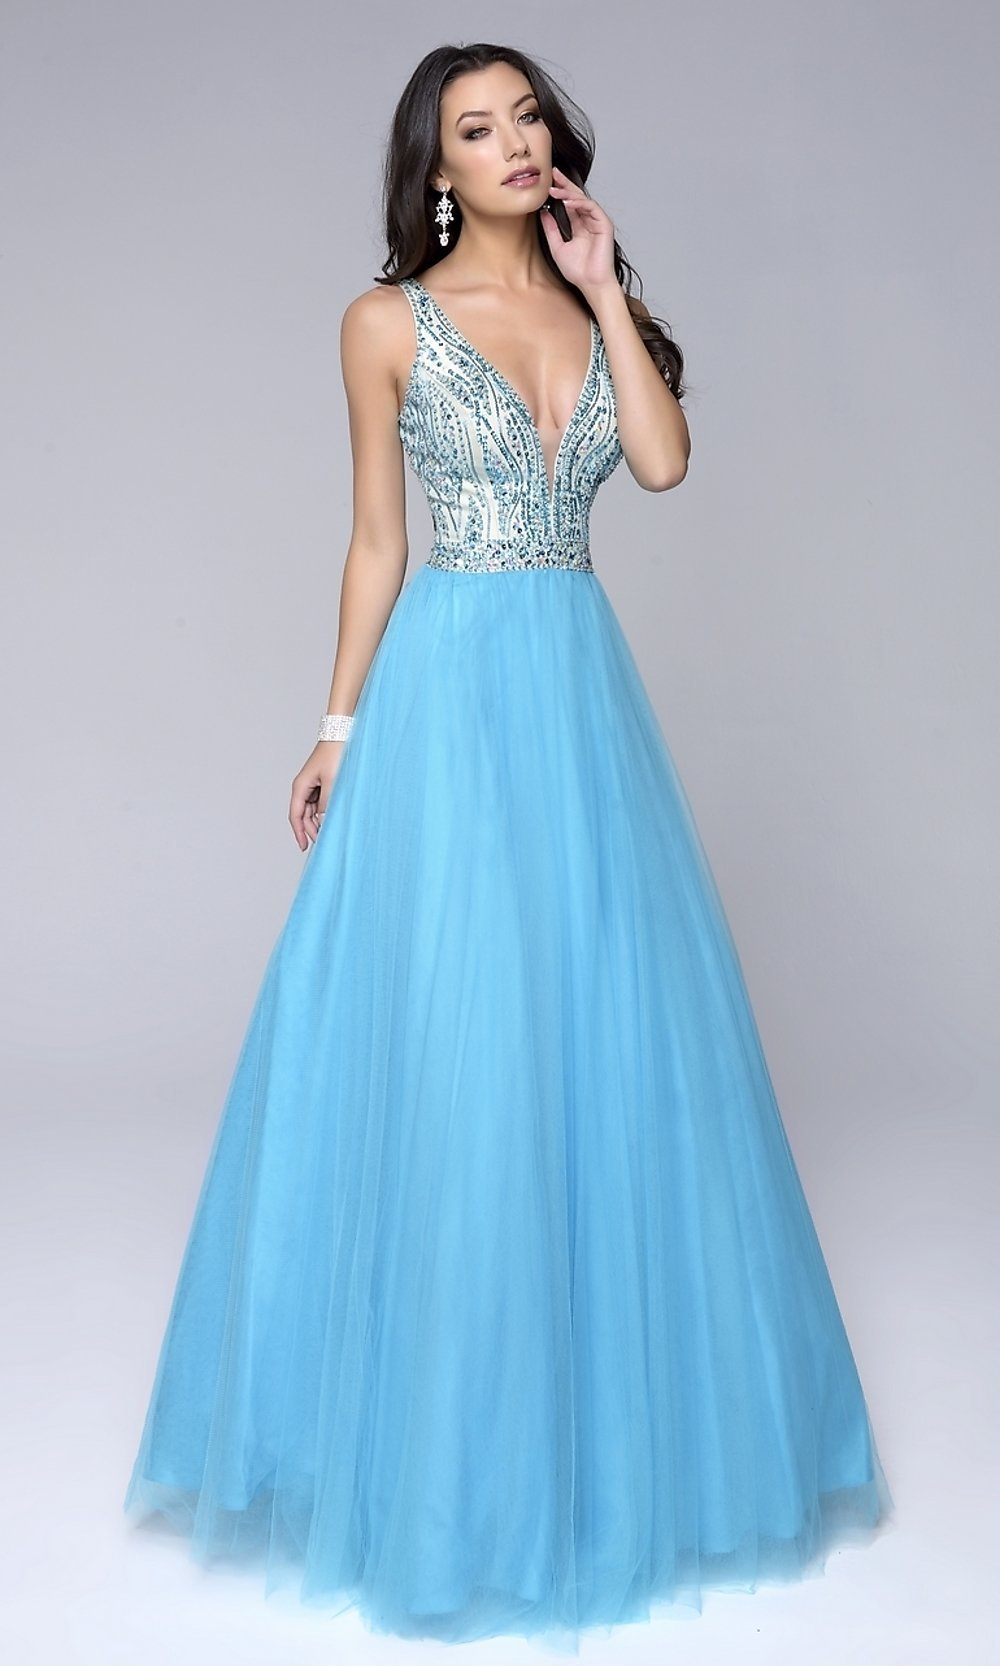 Modern Prom Dress Stores In Nc Ornament - All Wedding Dresses ...